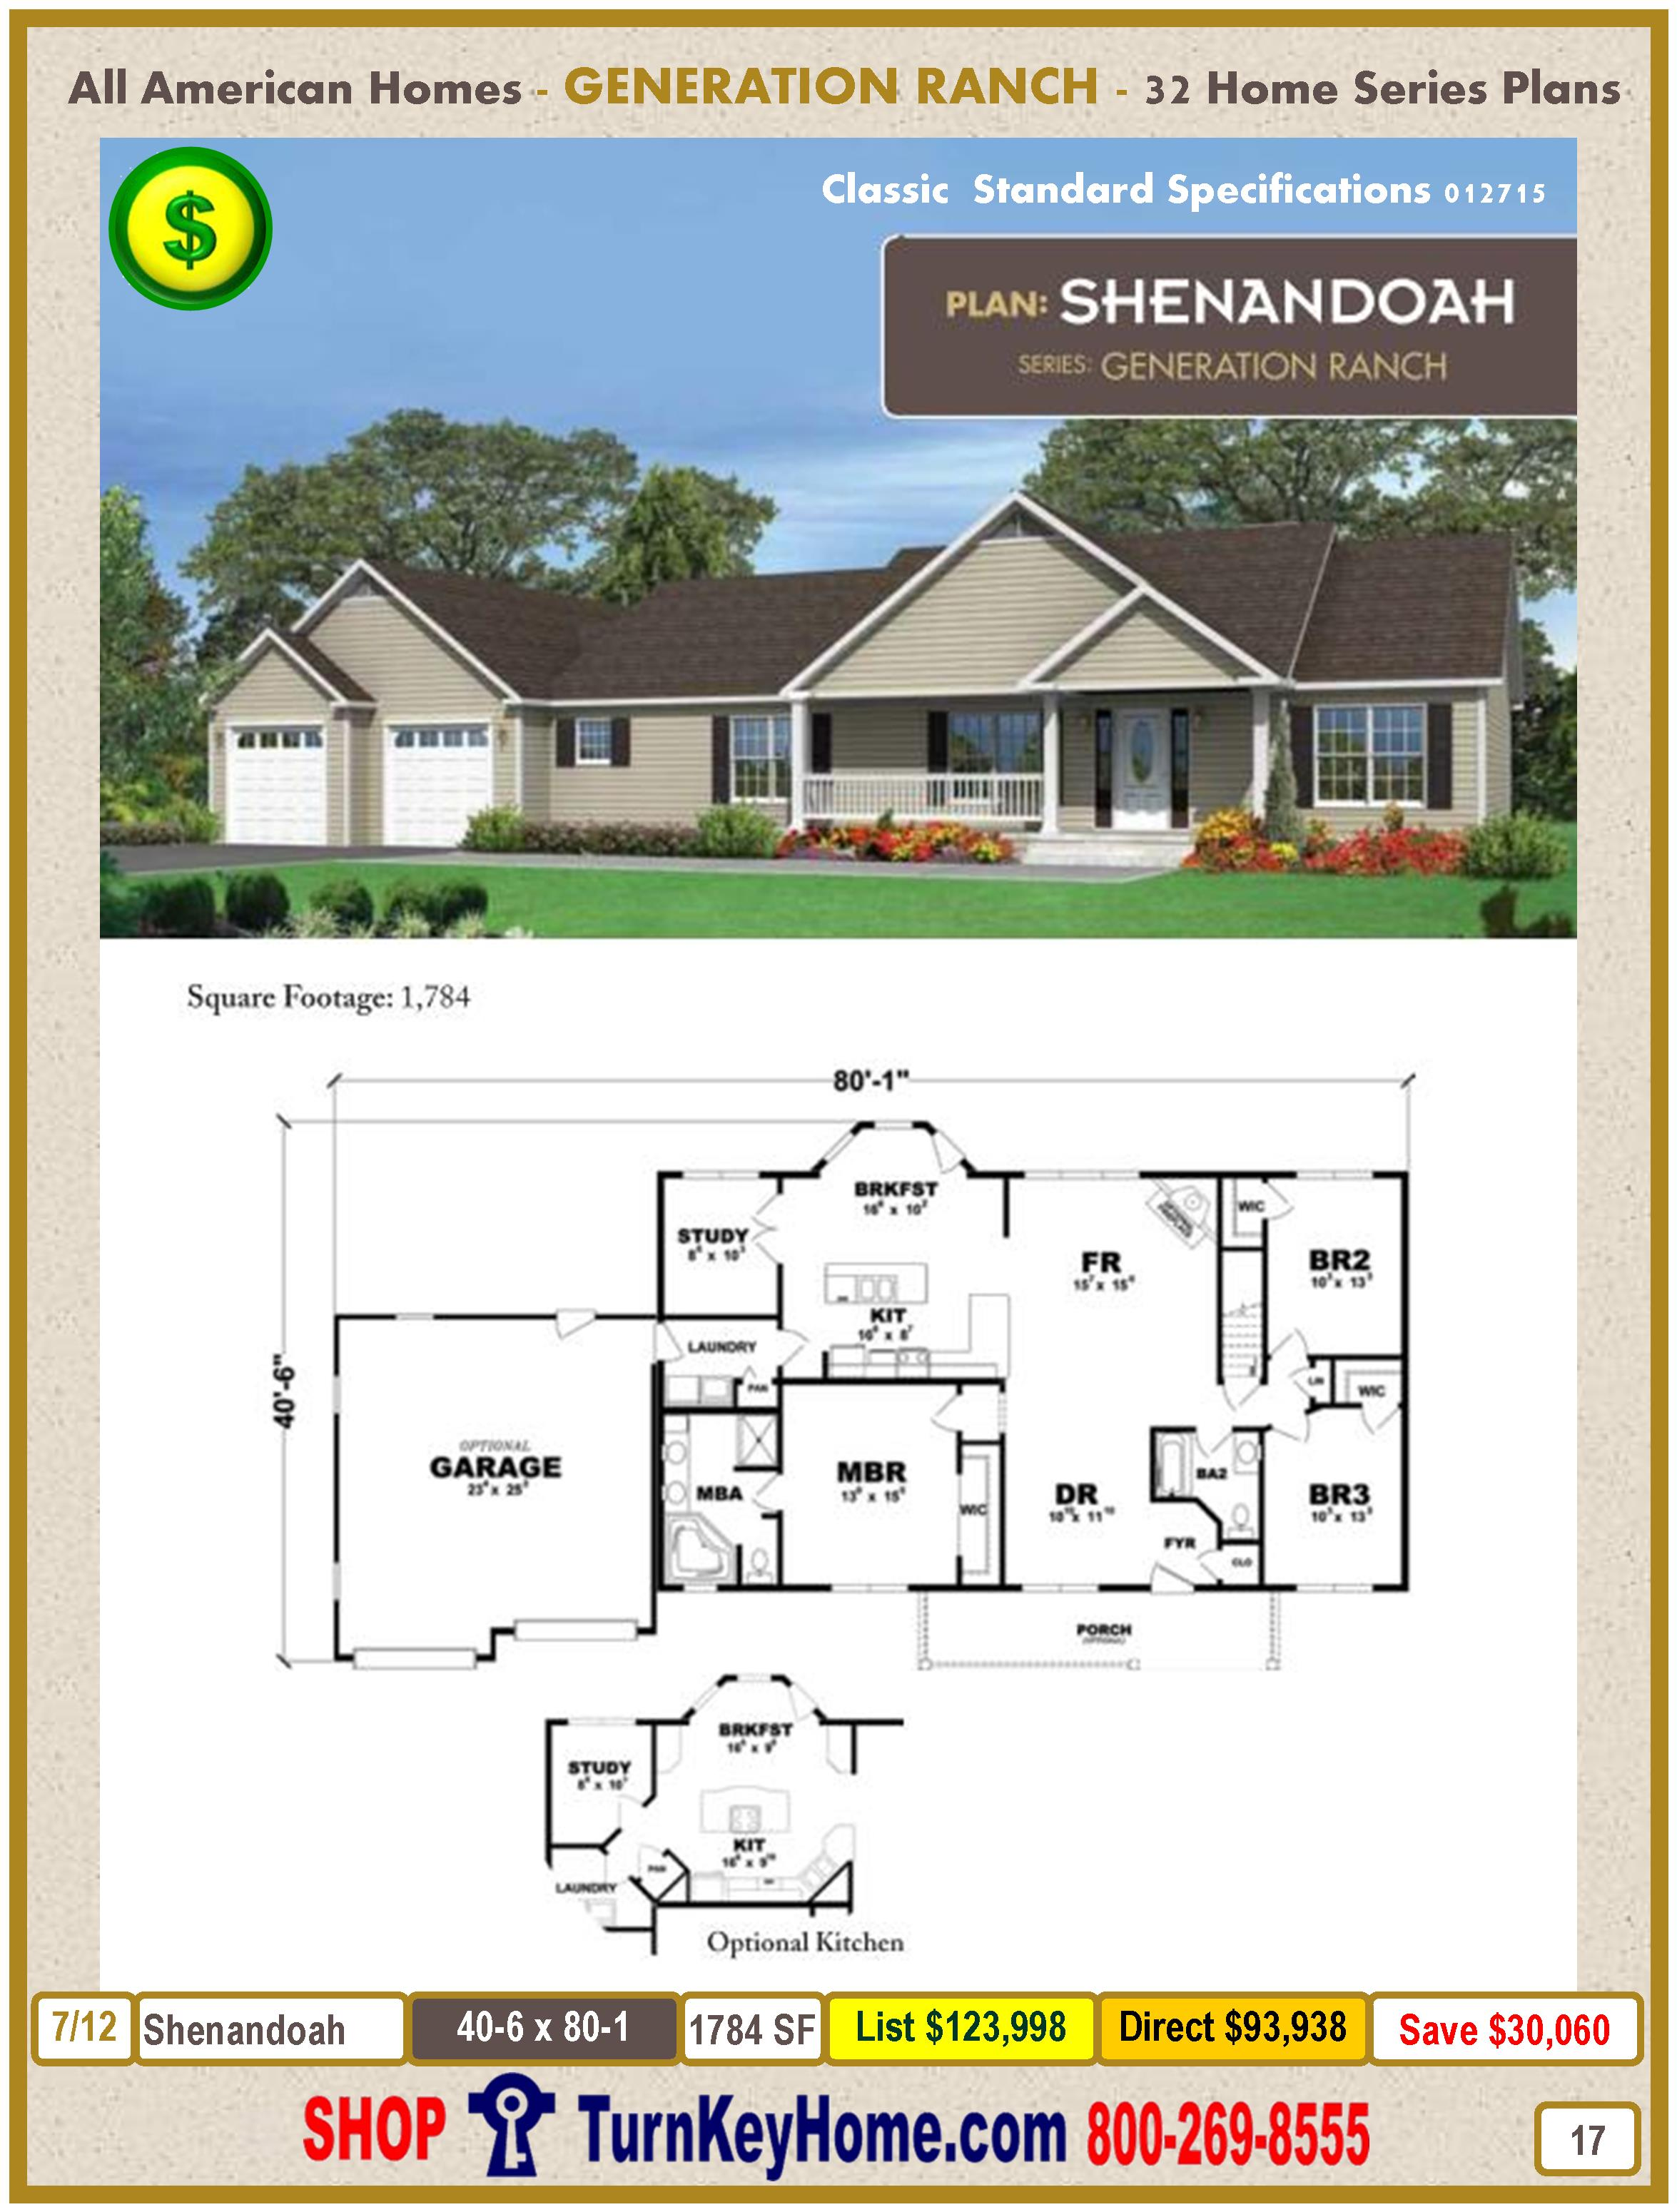 Modular.All.American.Homes.Generation.Ranch.Home.Series.Catalog.Page.17.Shenandoah.Direct.Price.021415